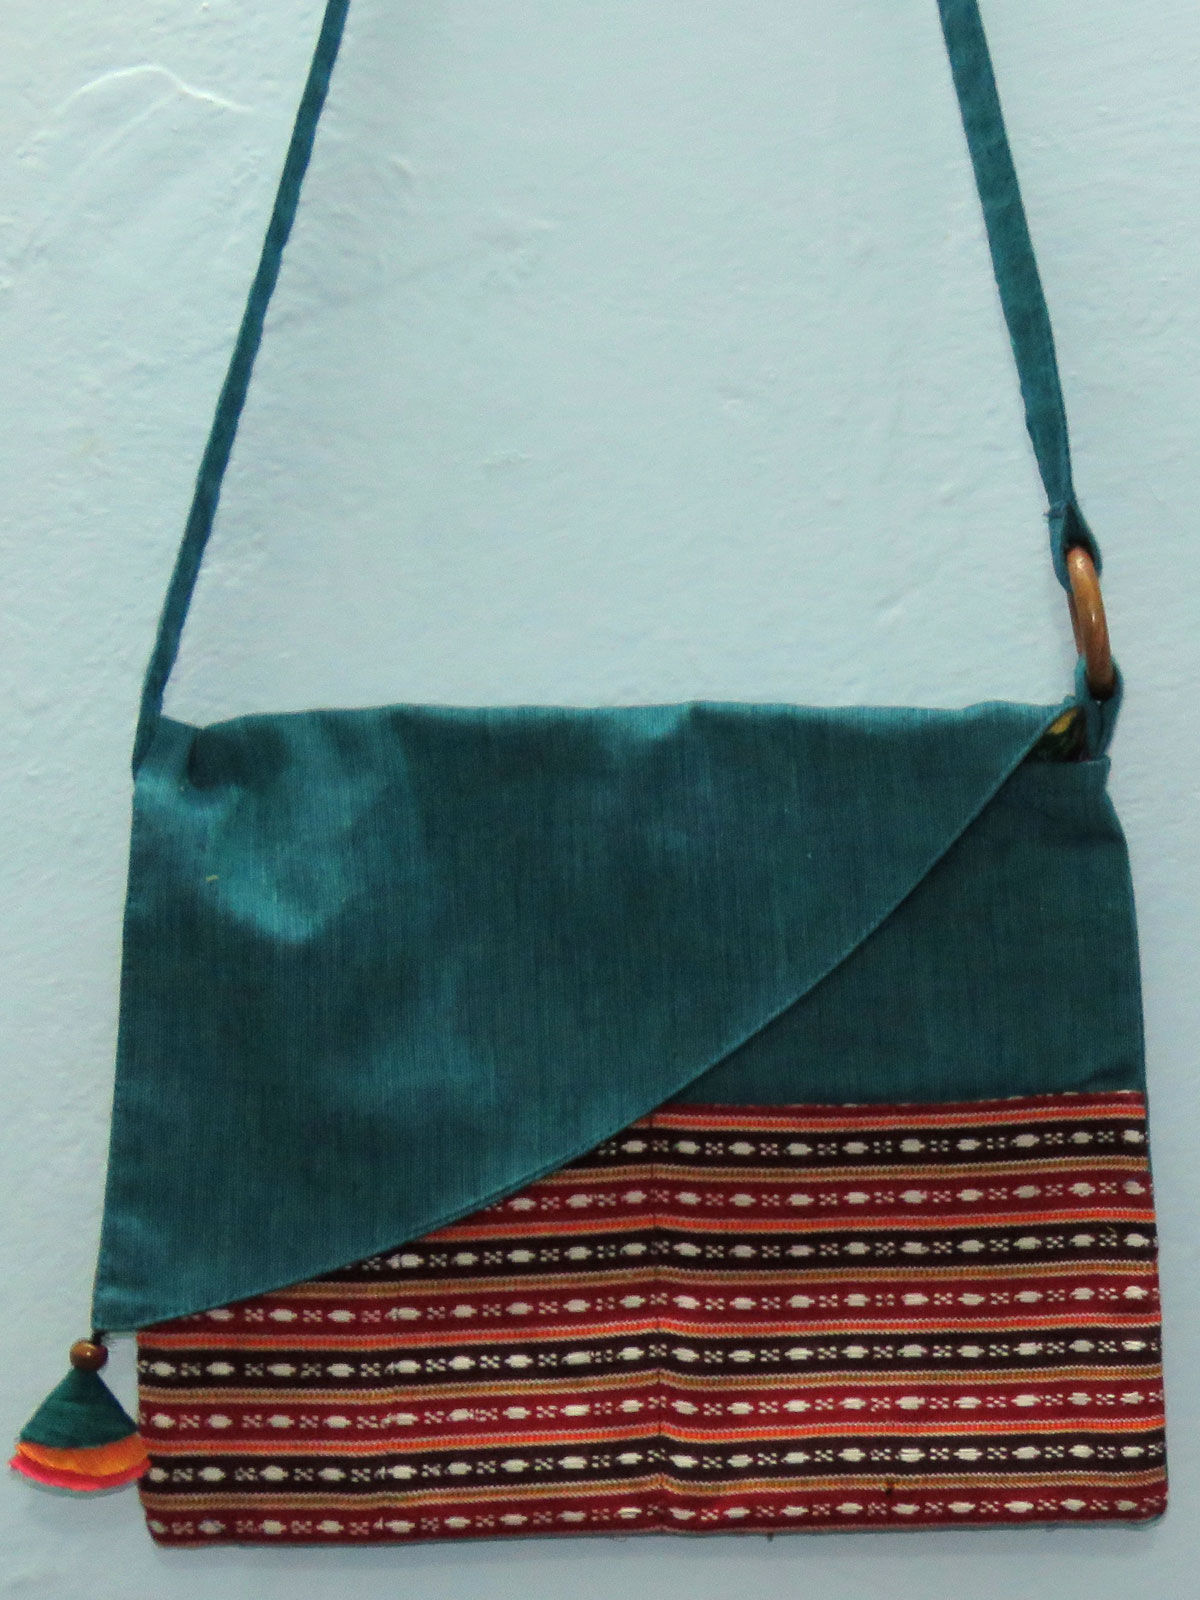 Teal cotton sling bag with patch pocket